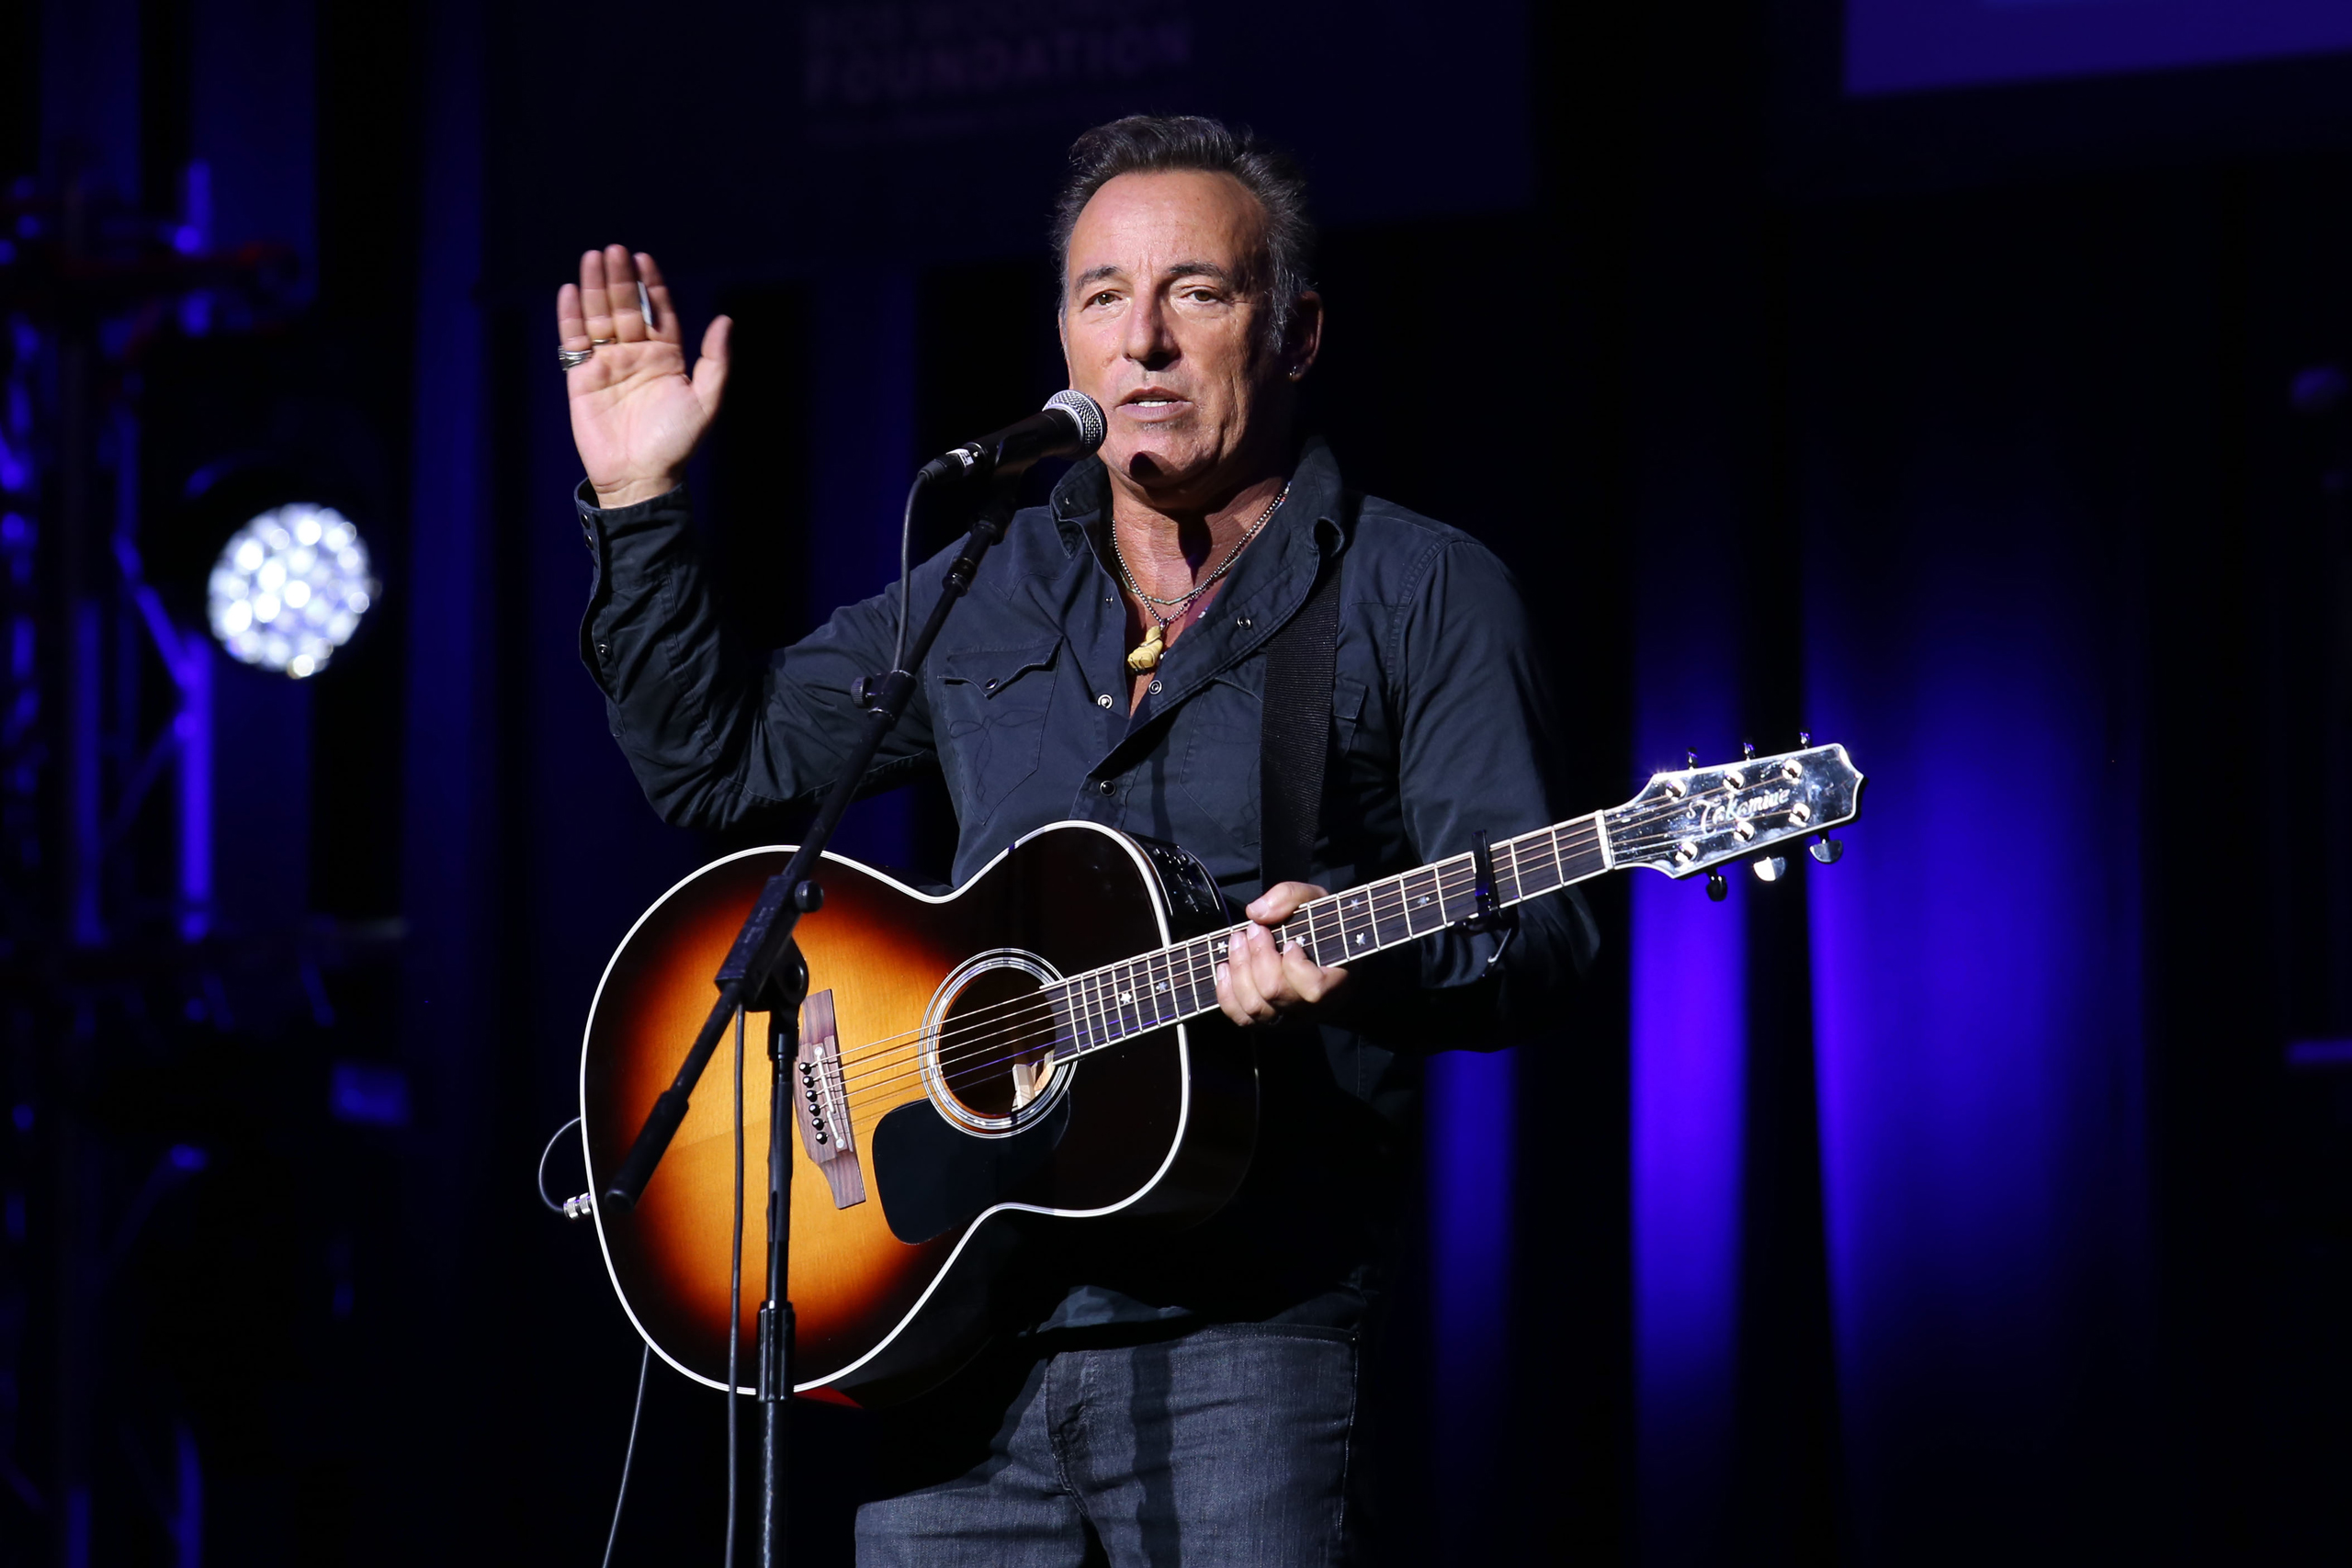 Bruce Springsteen performs at the 9th Annual Stand Up For Heroes event at Madison Square Garden in New York on Nov. 10, 2015.